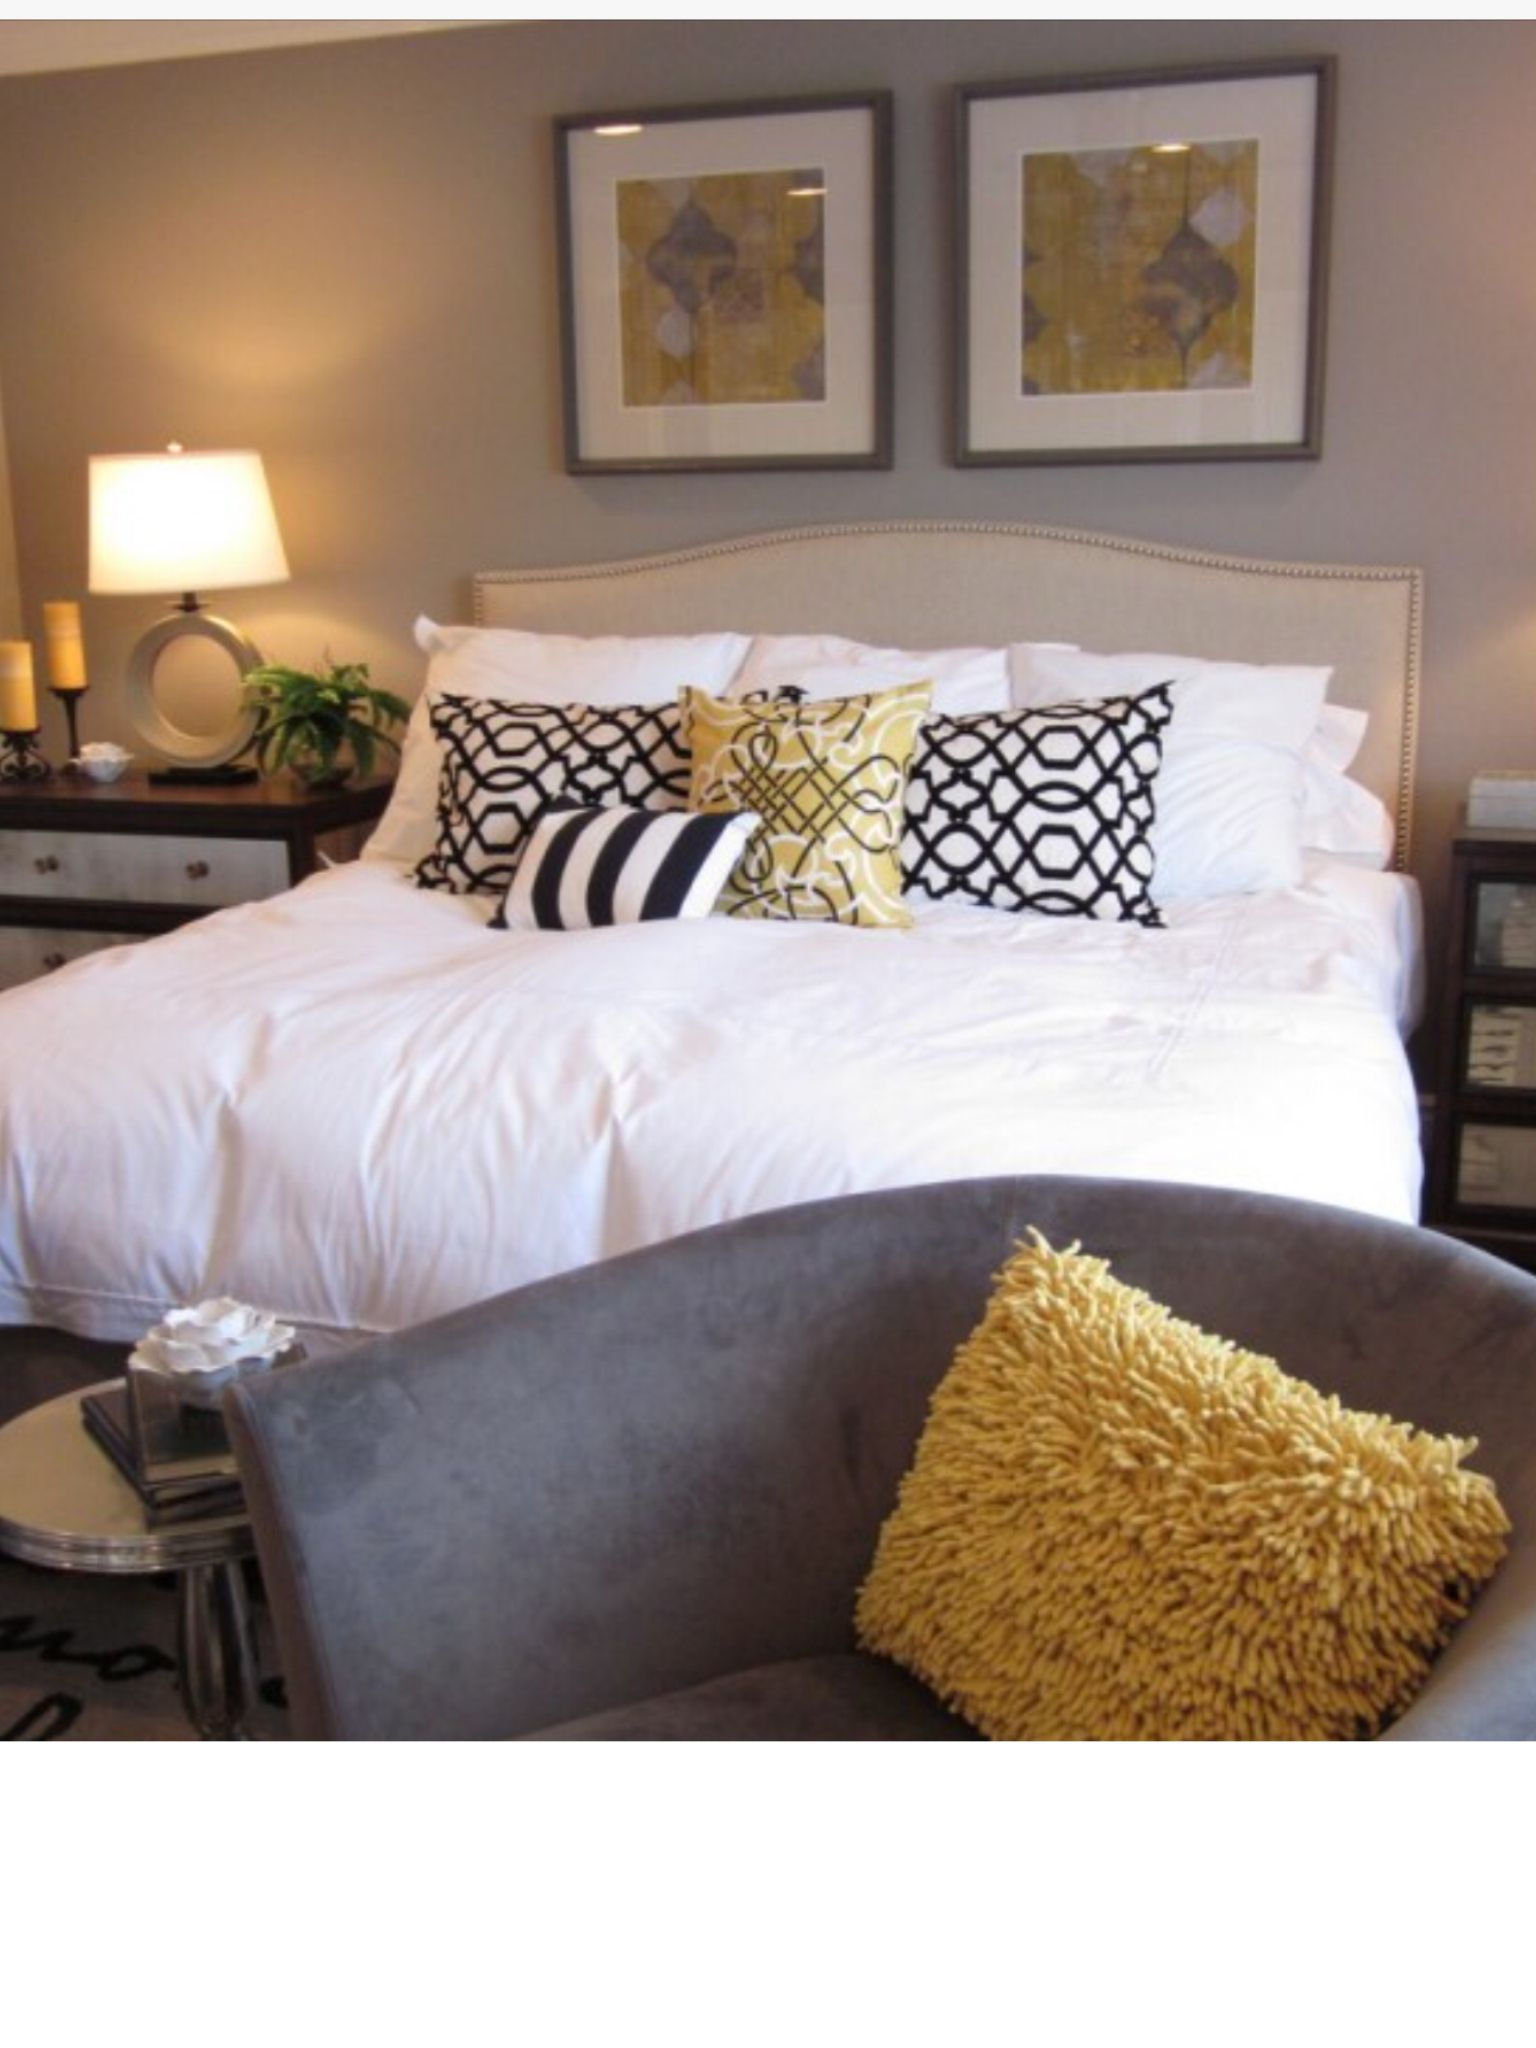 Bedroom colors for men - Bedroom Colour Scheme Black White Mustard And Beige